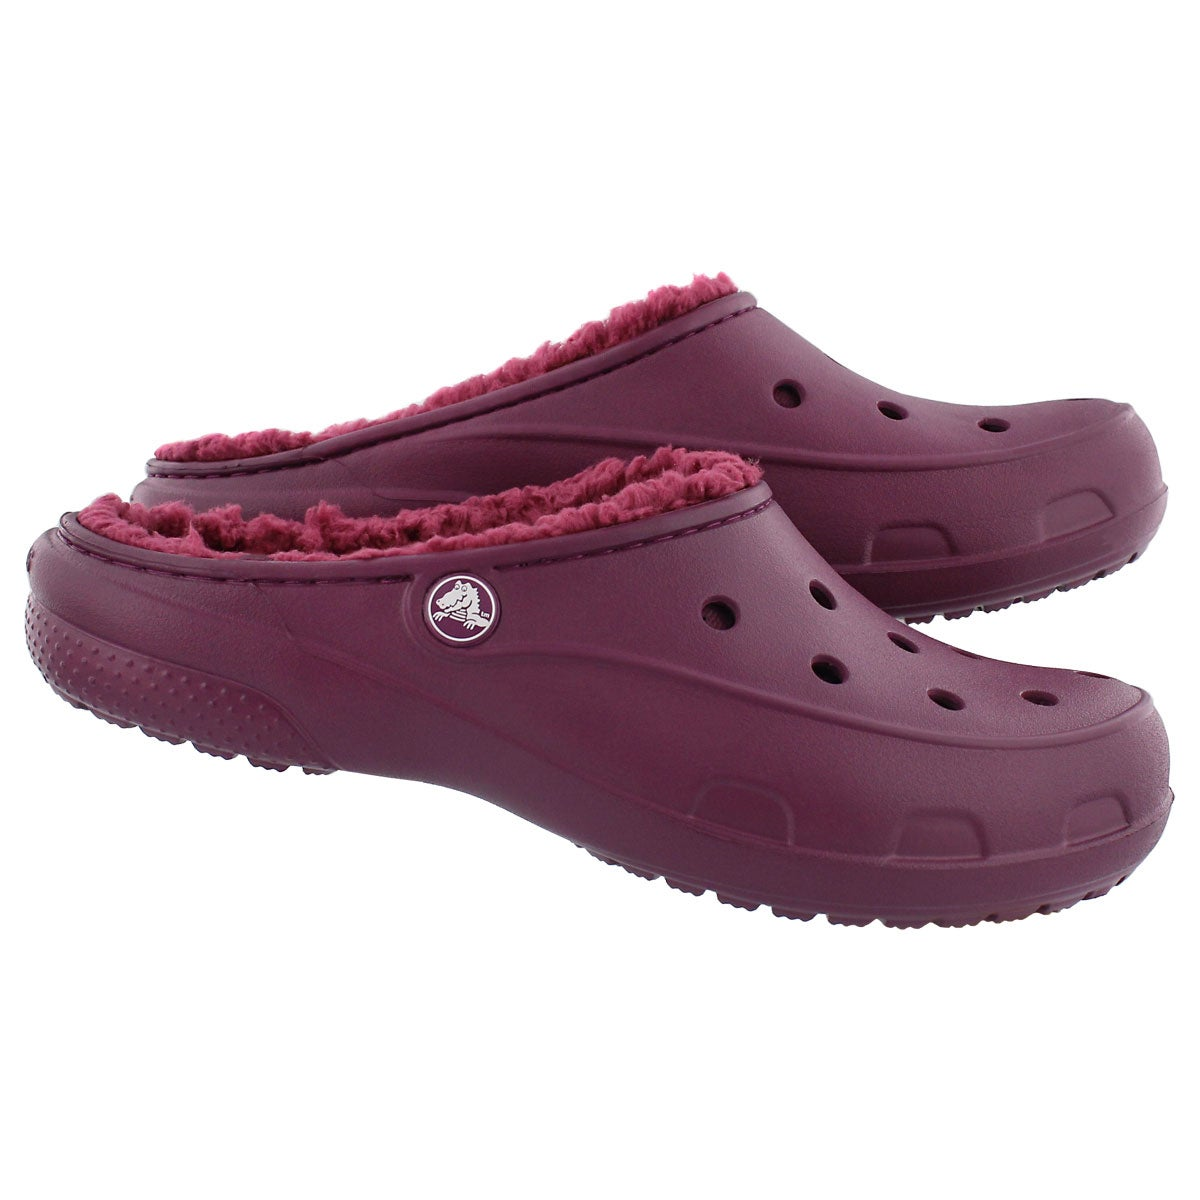 Lds Freesail Plushlined plum clog